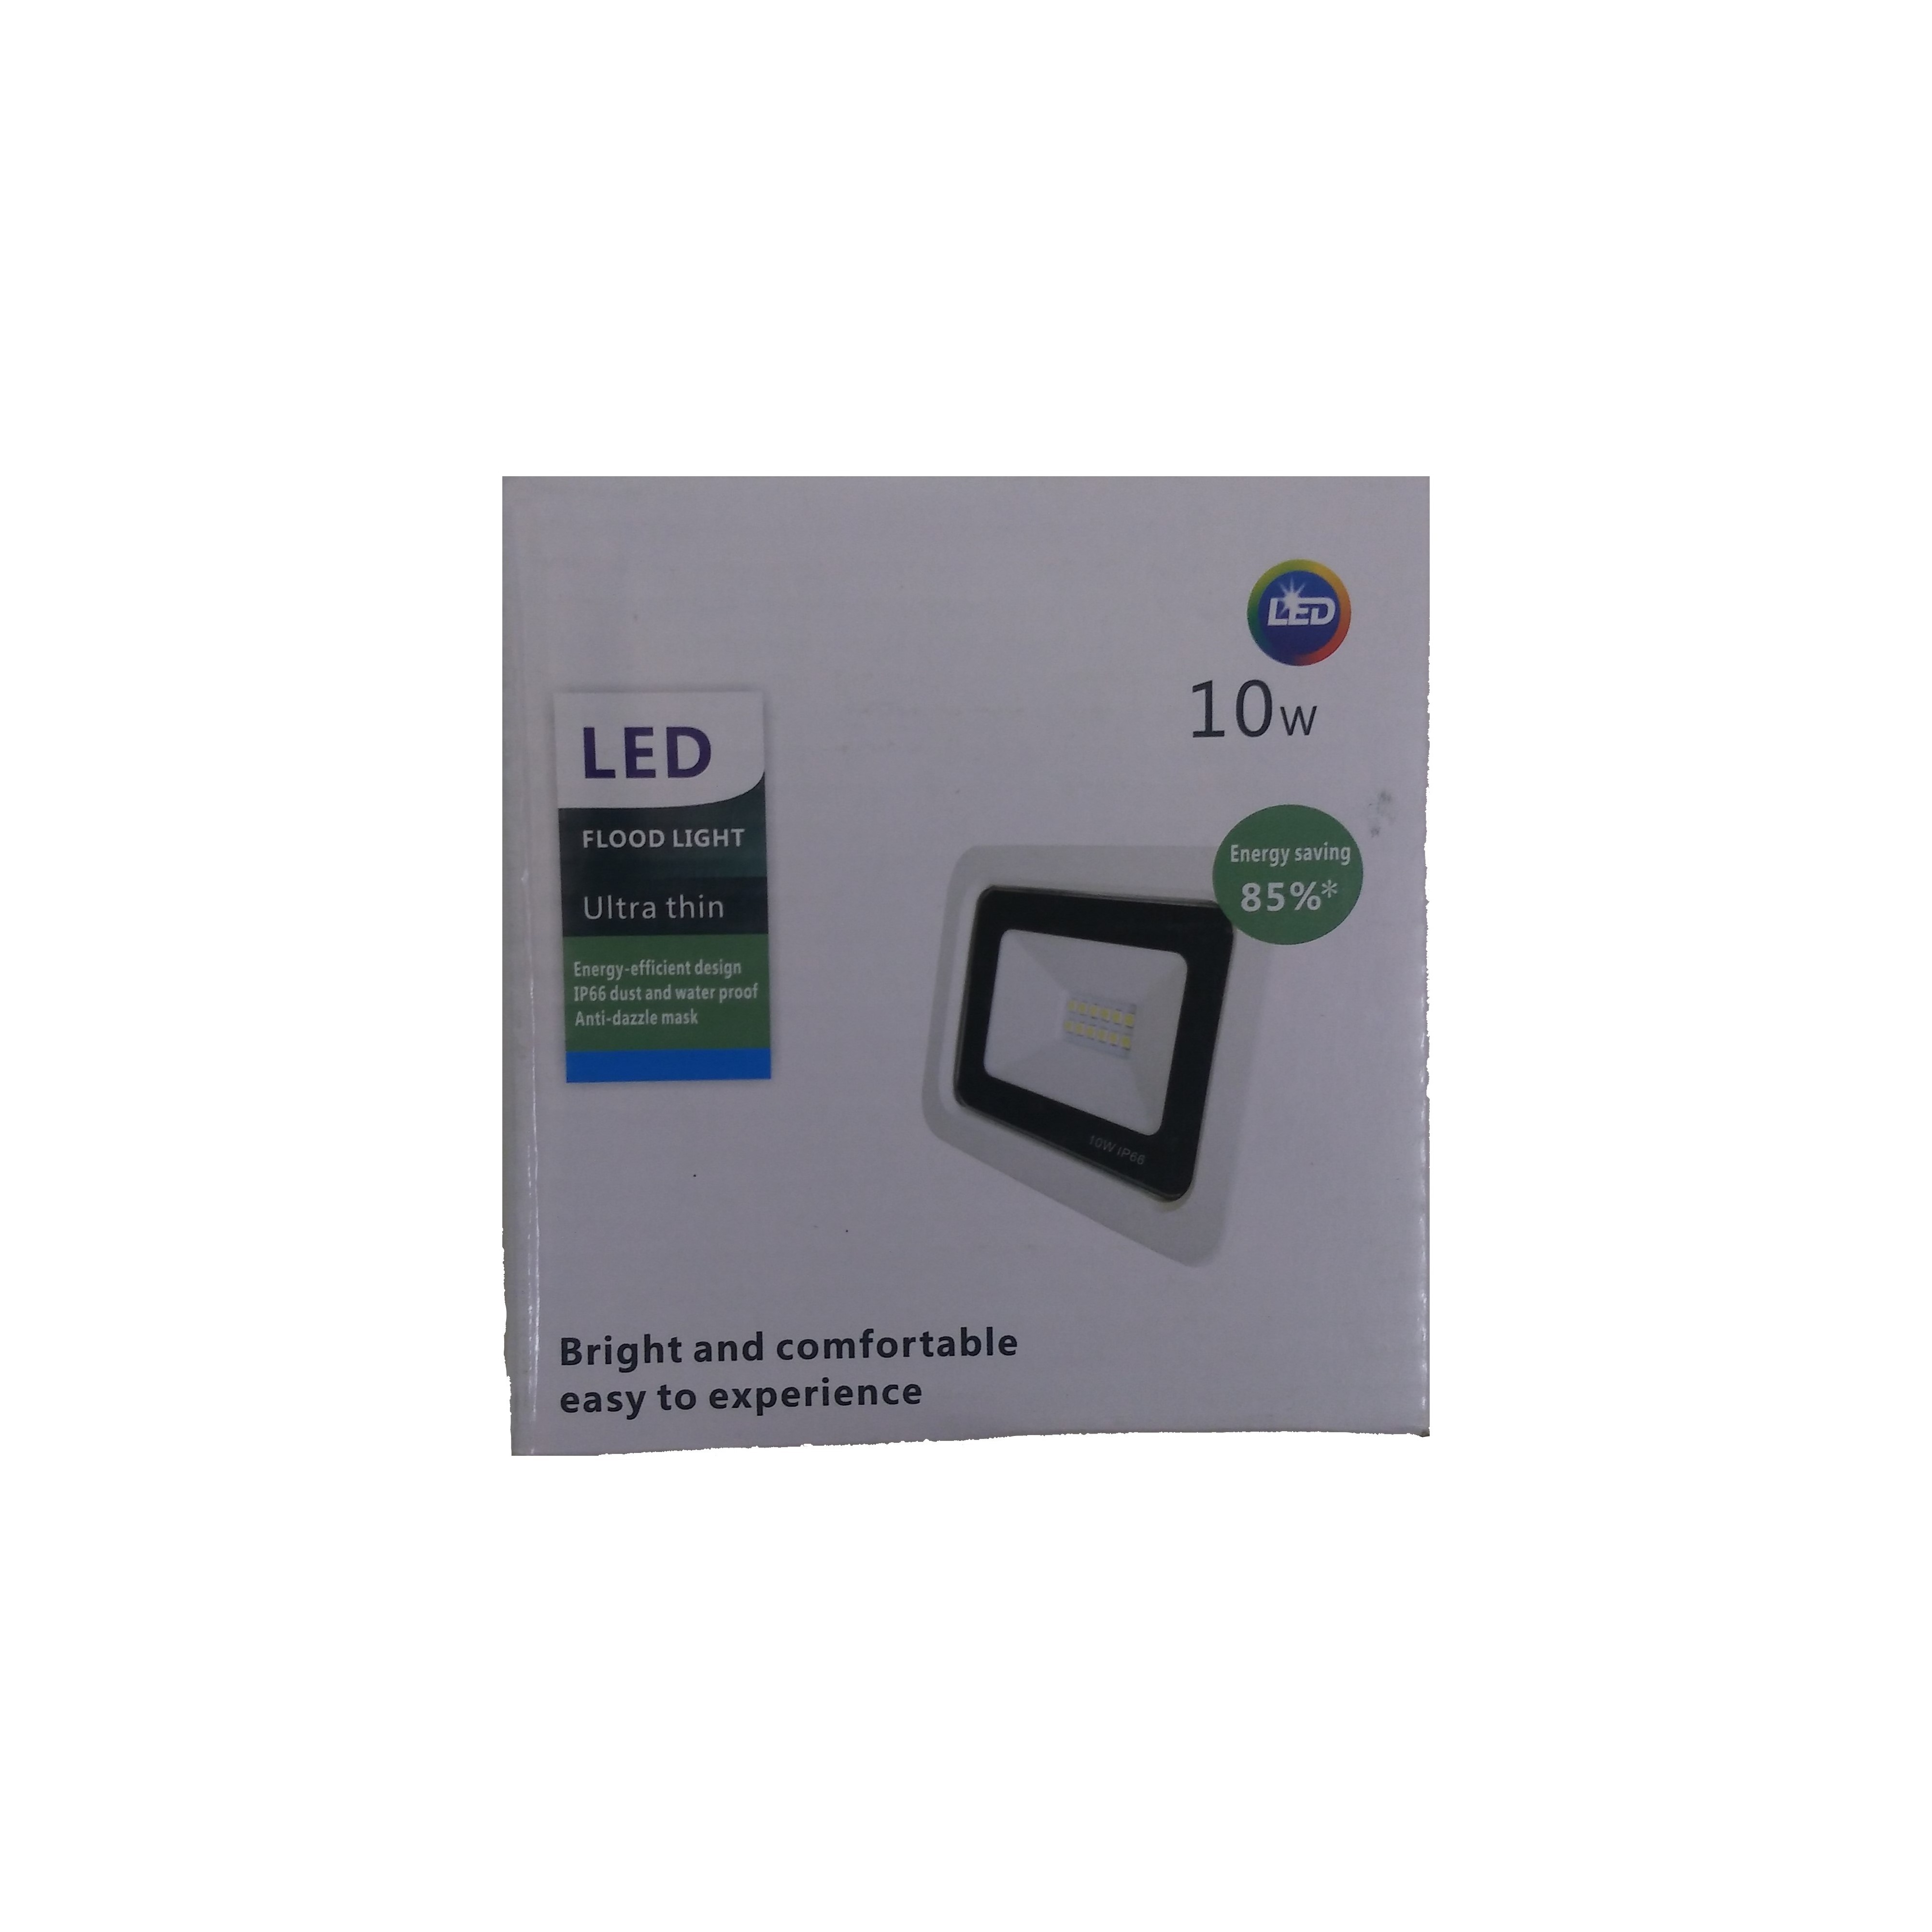 image number  2 products  10 watt ATG SMD projector